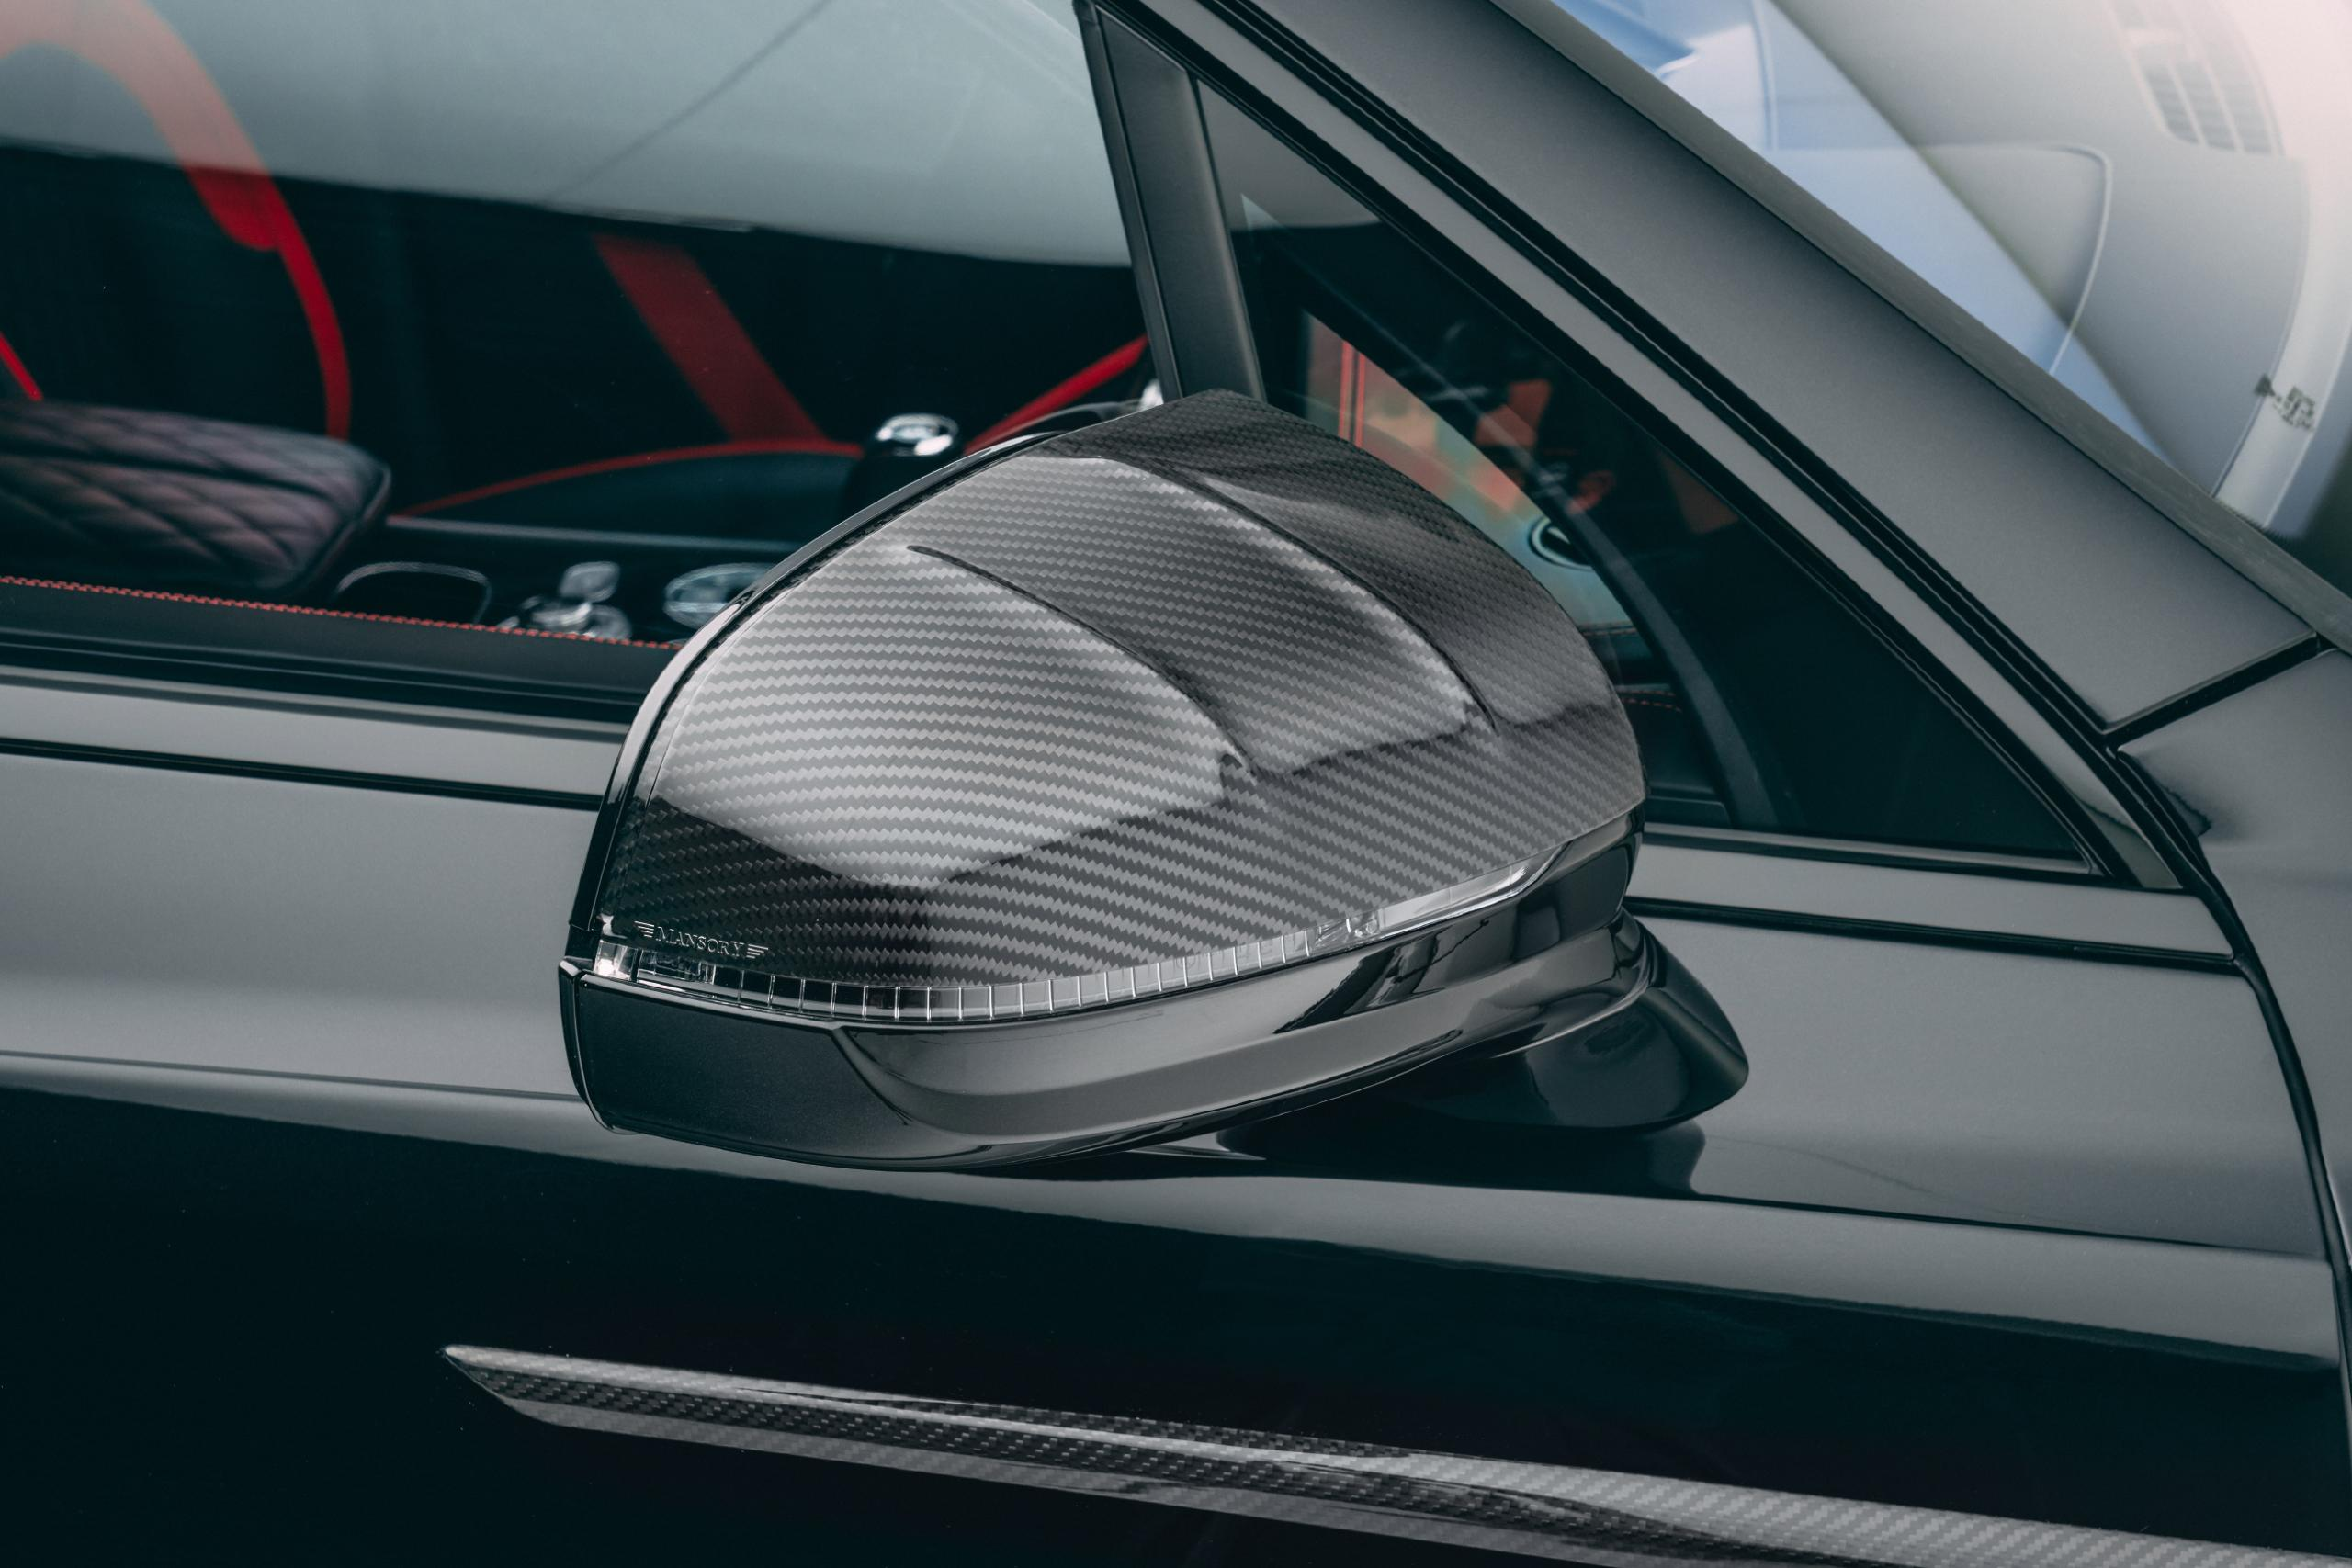 mansory new bentayga wide body kit carbon fiber mirror cover front 2021